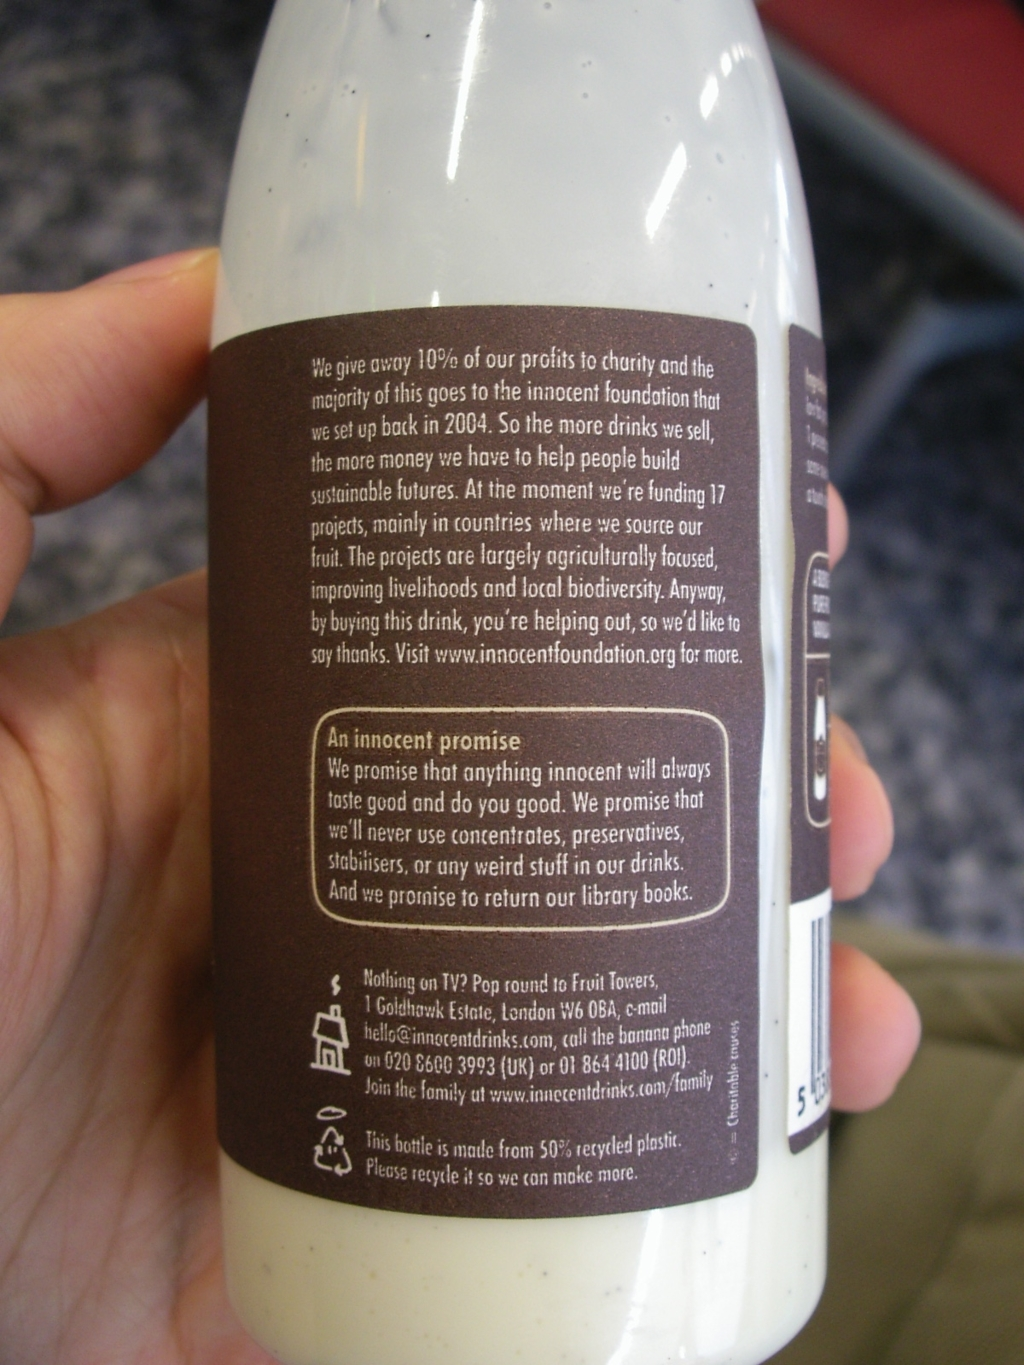 Smoothie Label from Innocent Drinks